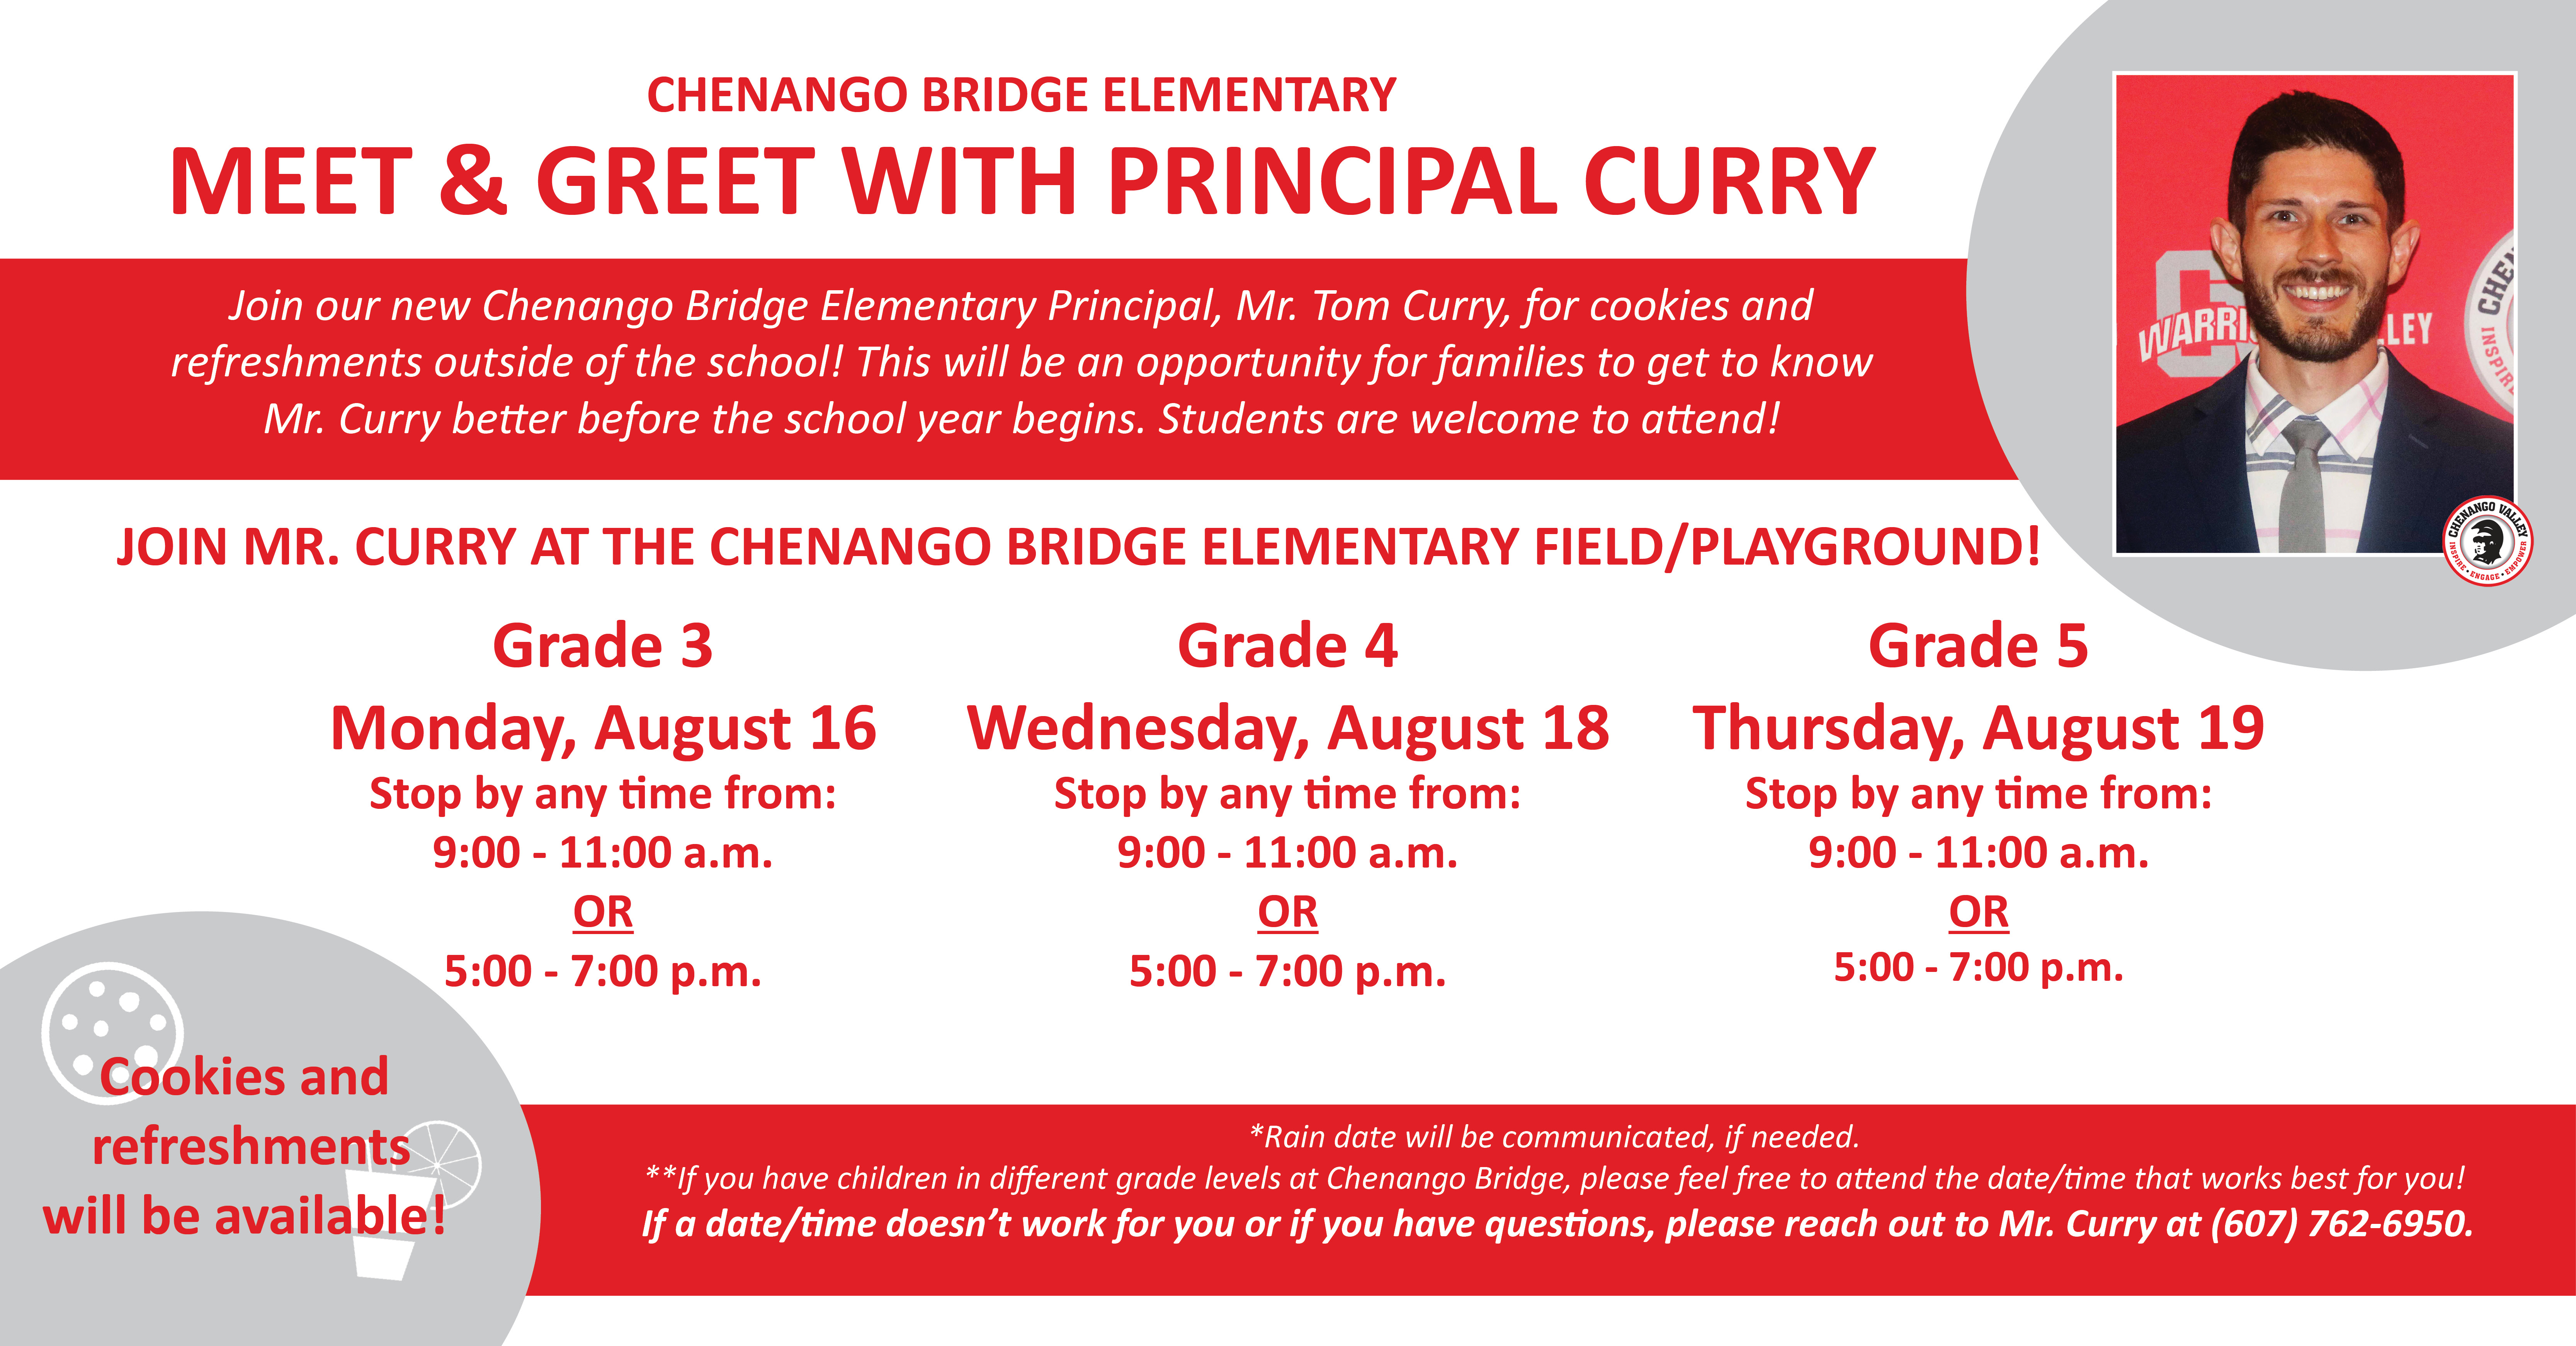 Meet and Greet with Principal Curry